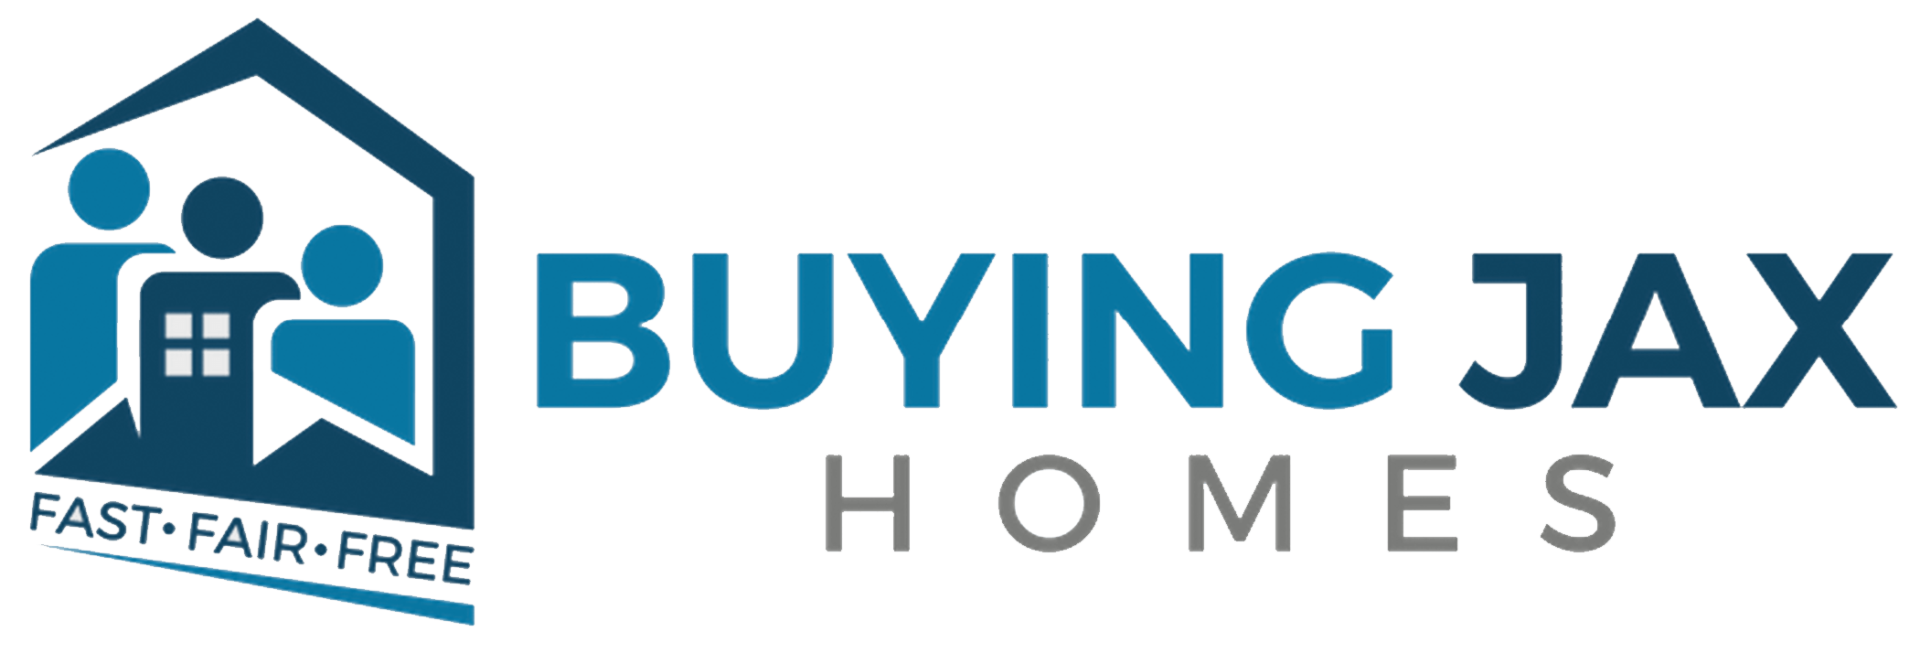 BUYING JAX HOMES  logo